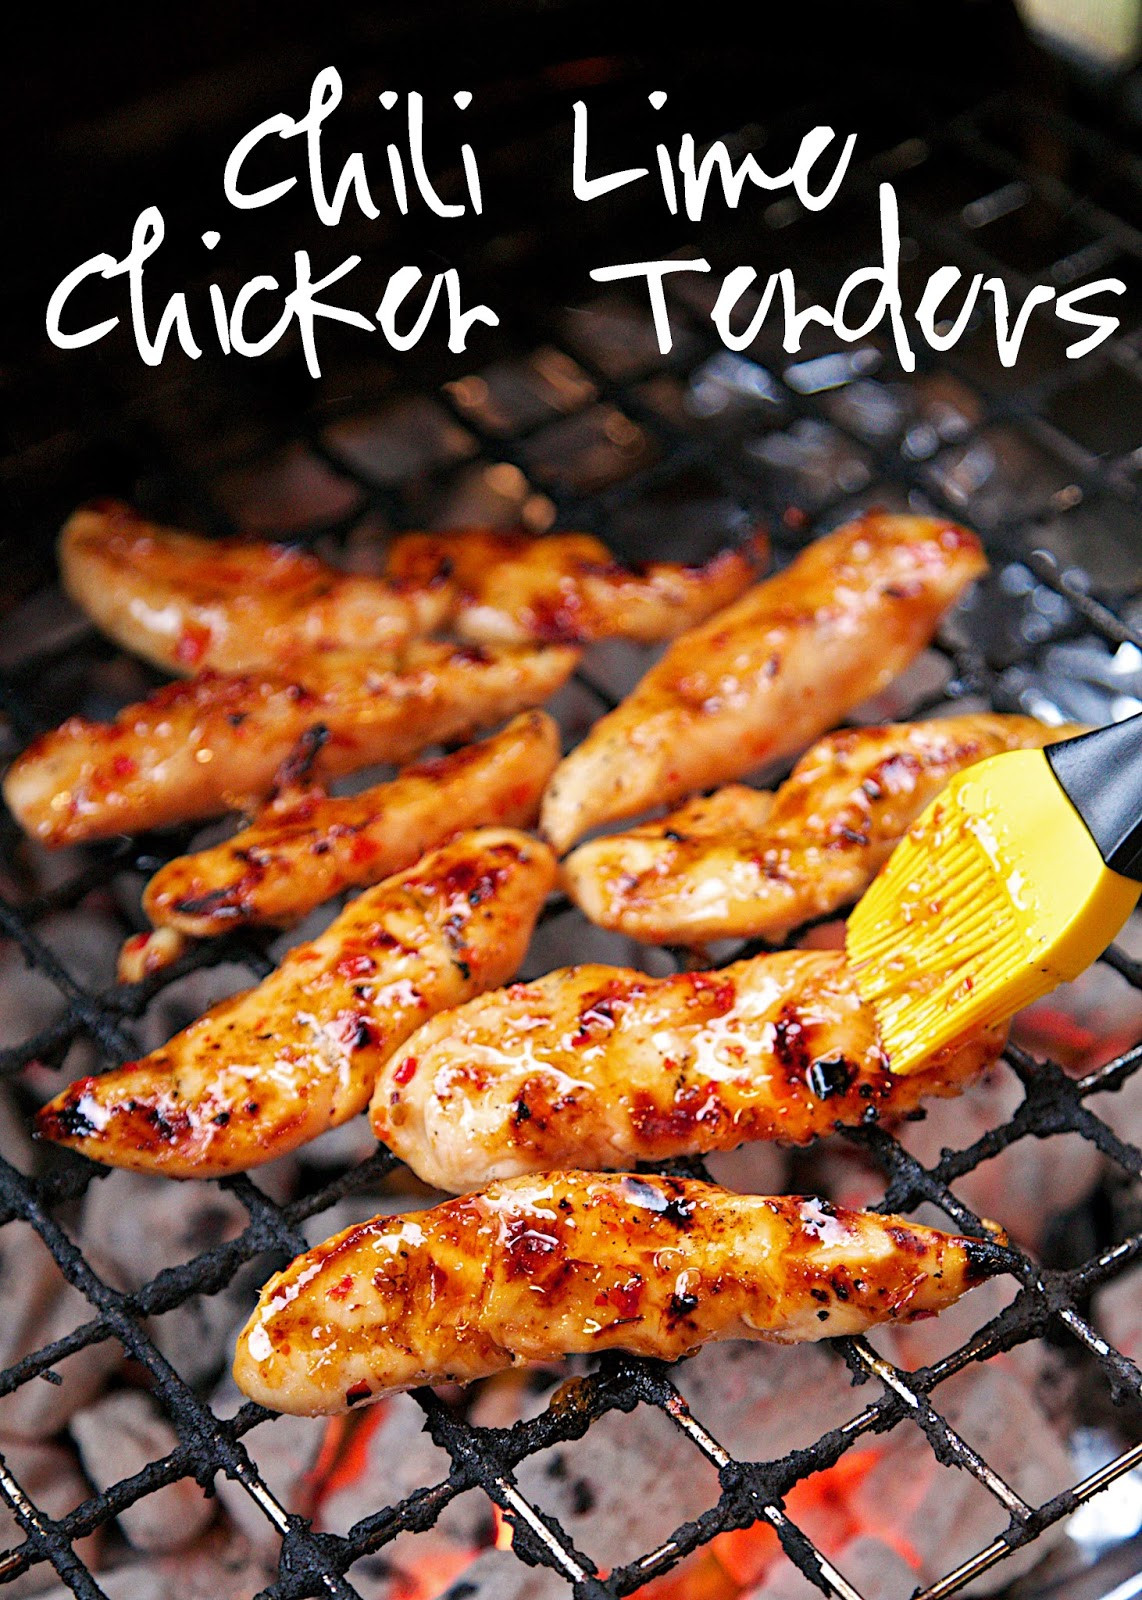 Chili Lime Chicken Recipe  Chili Lime Chicken Tenders